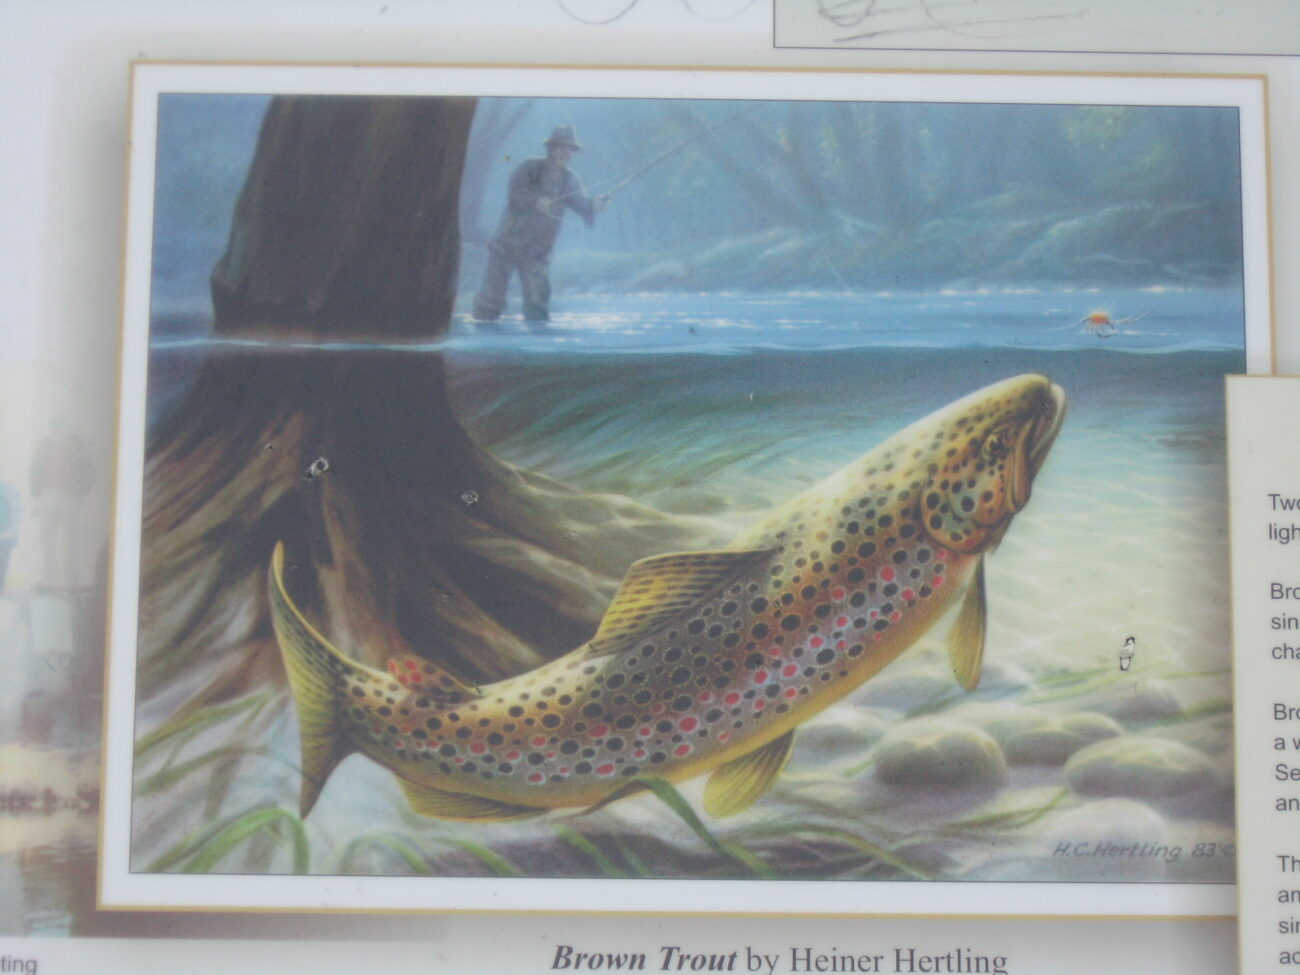 A nice painting of a brown trout that is on a sign at the Pere Marquette rail trail in Baldwin MI.